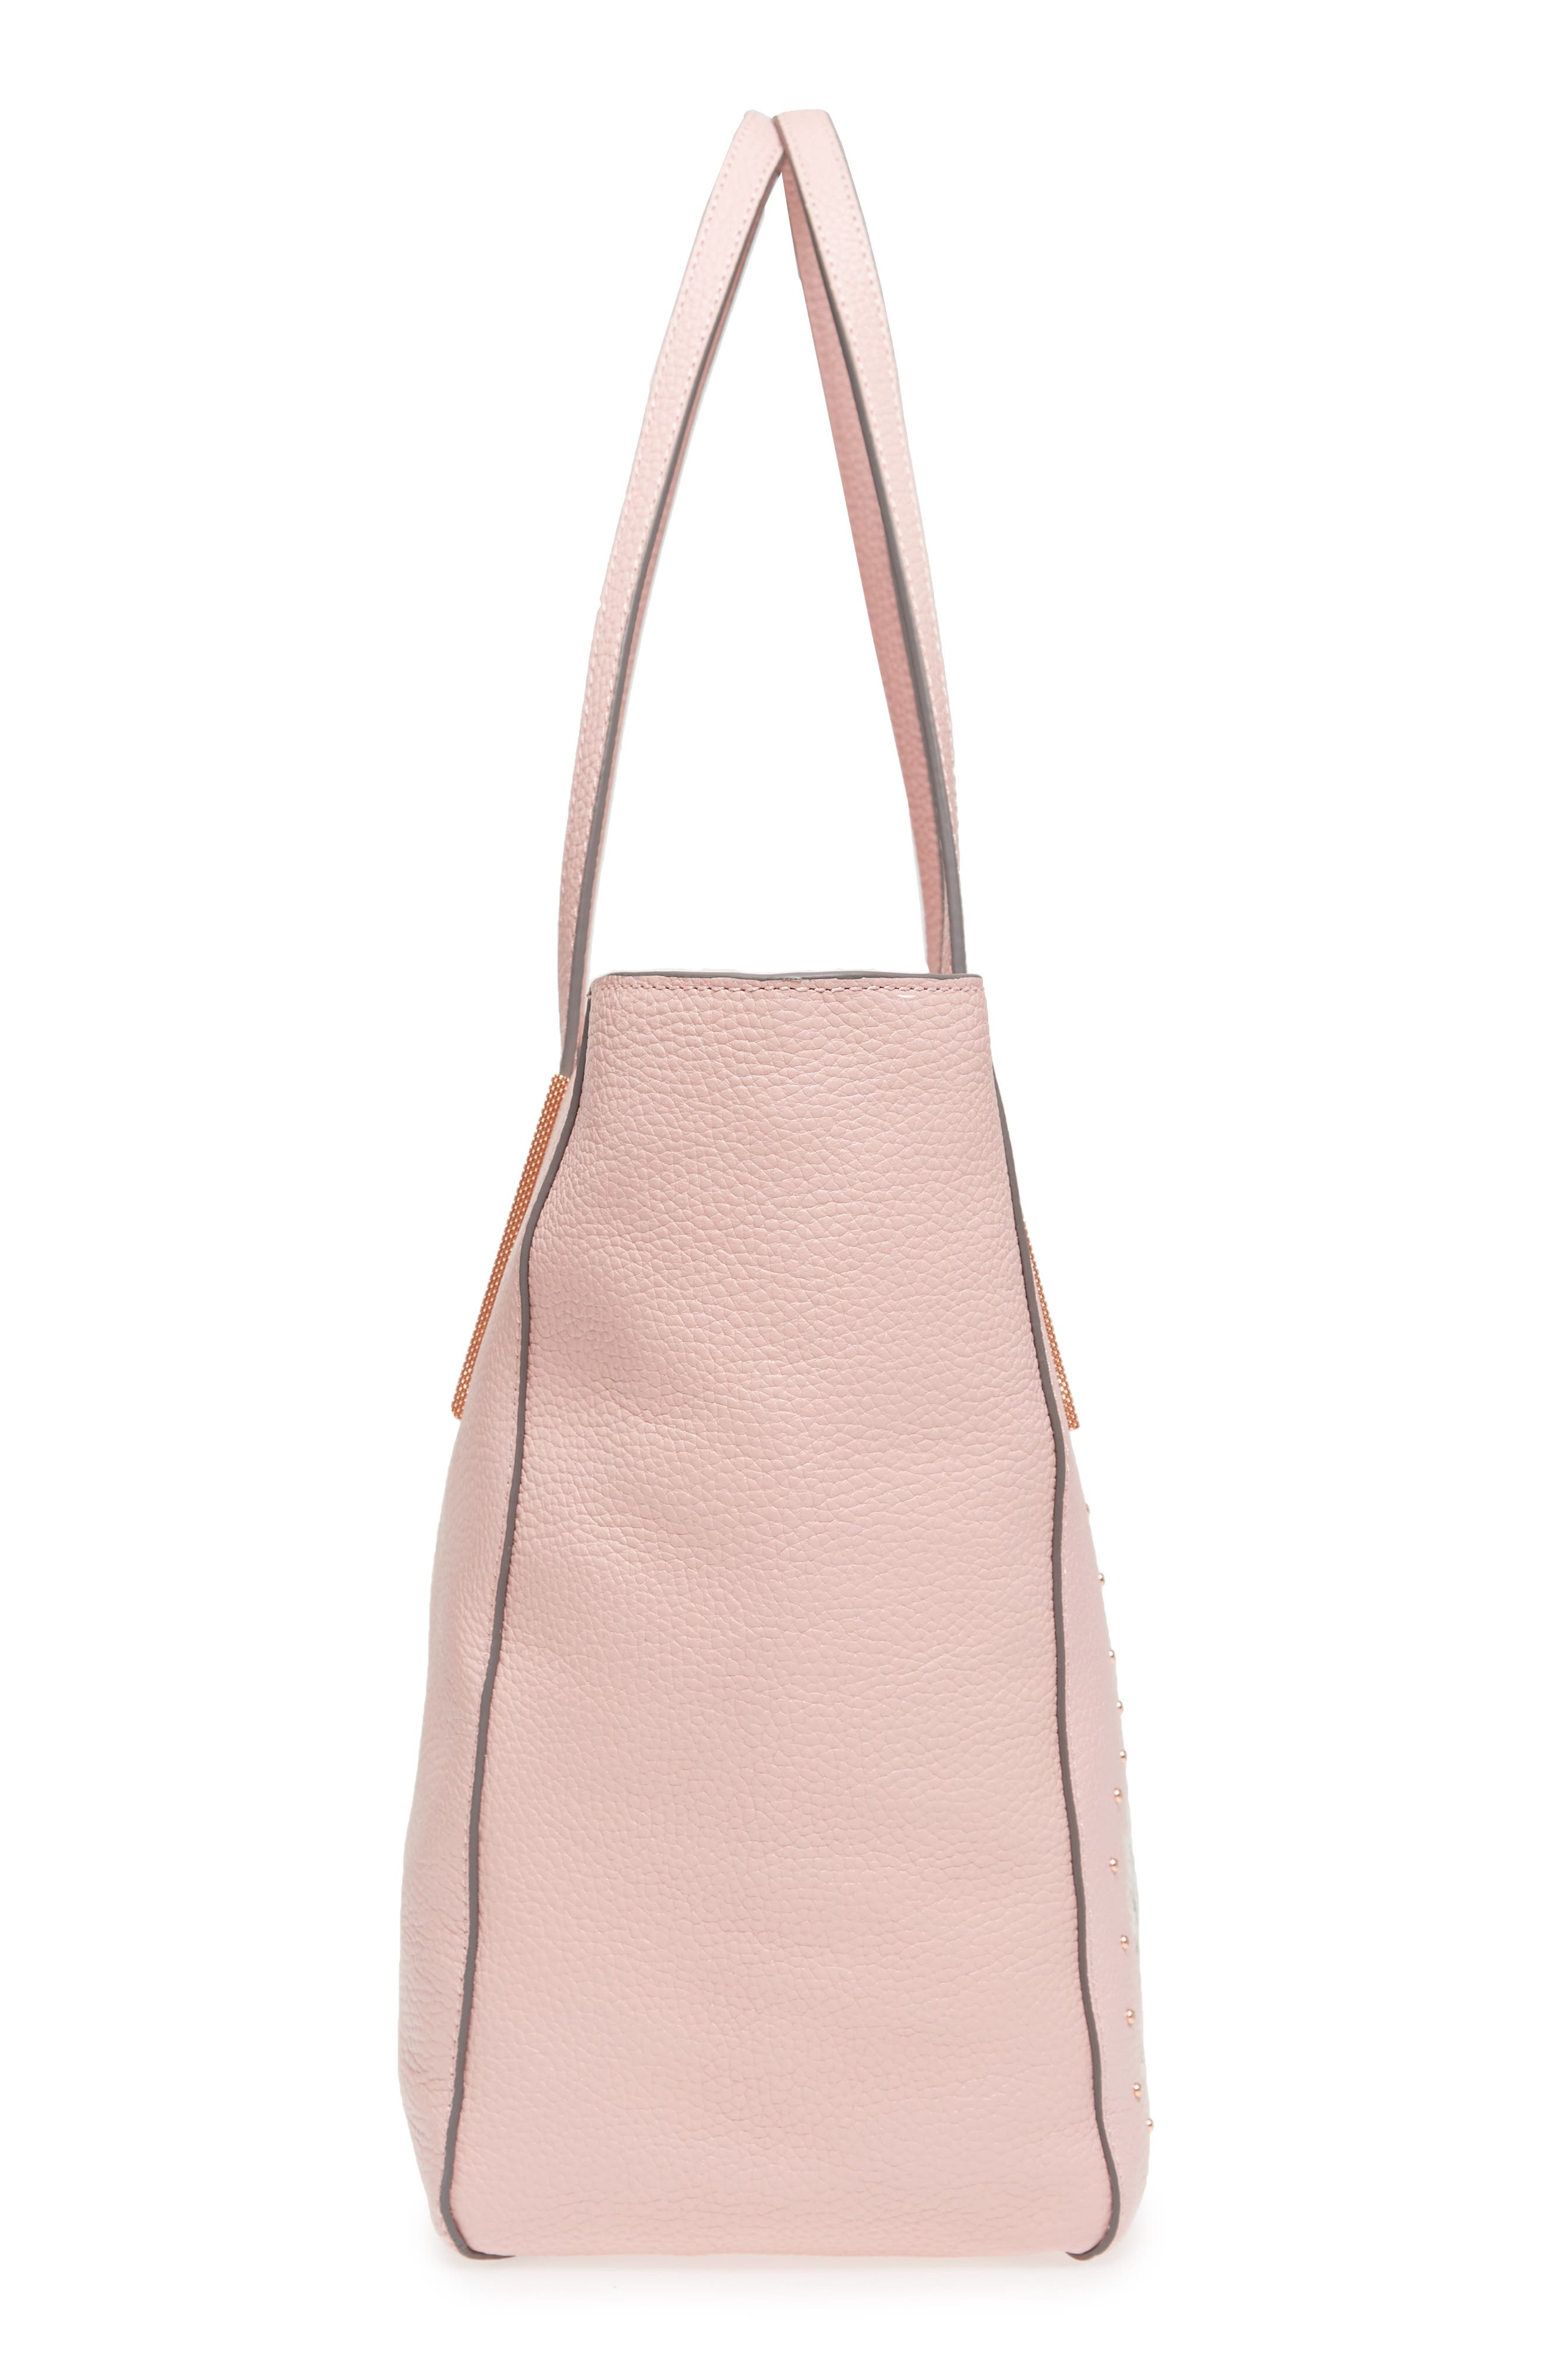 Palace Gardens Large Leather Tote,                             Alternate thumbnail 5, color,